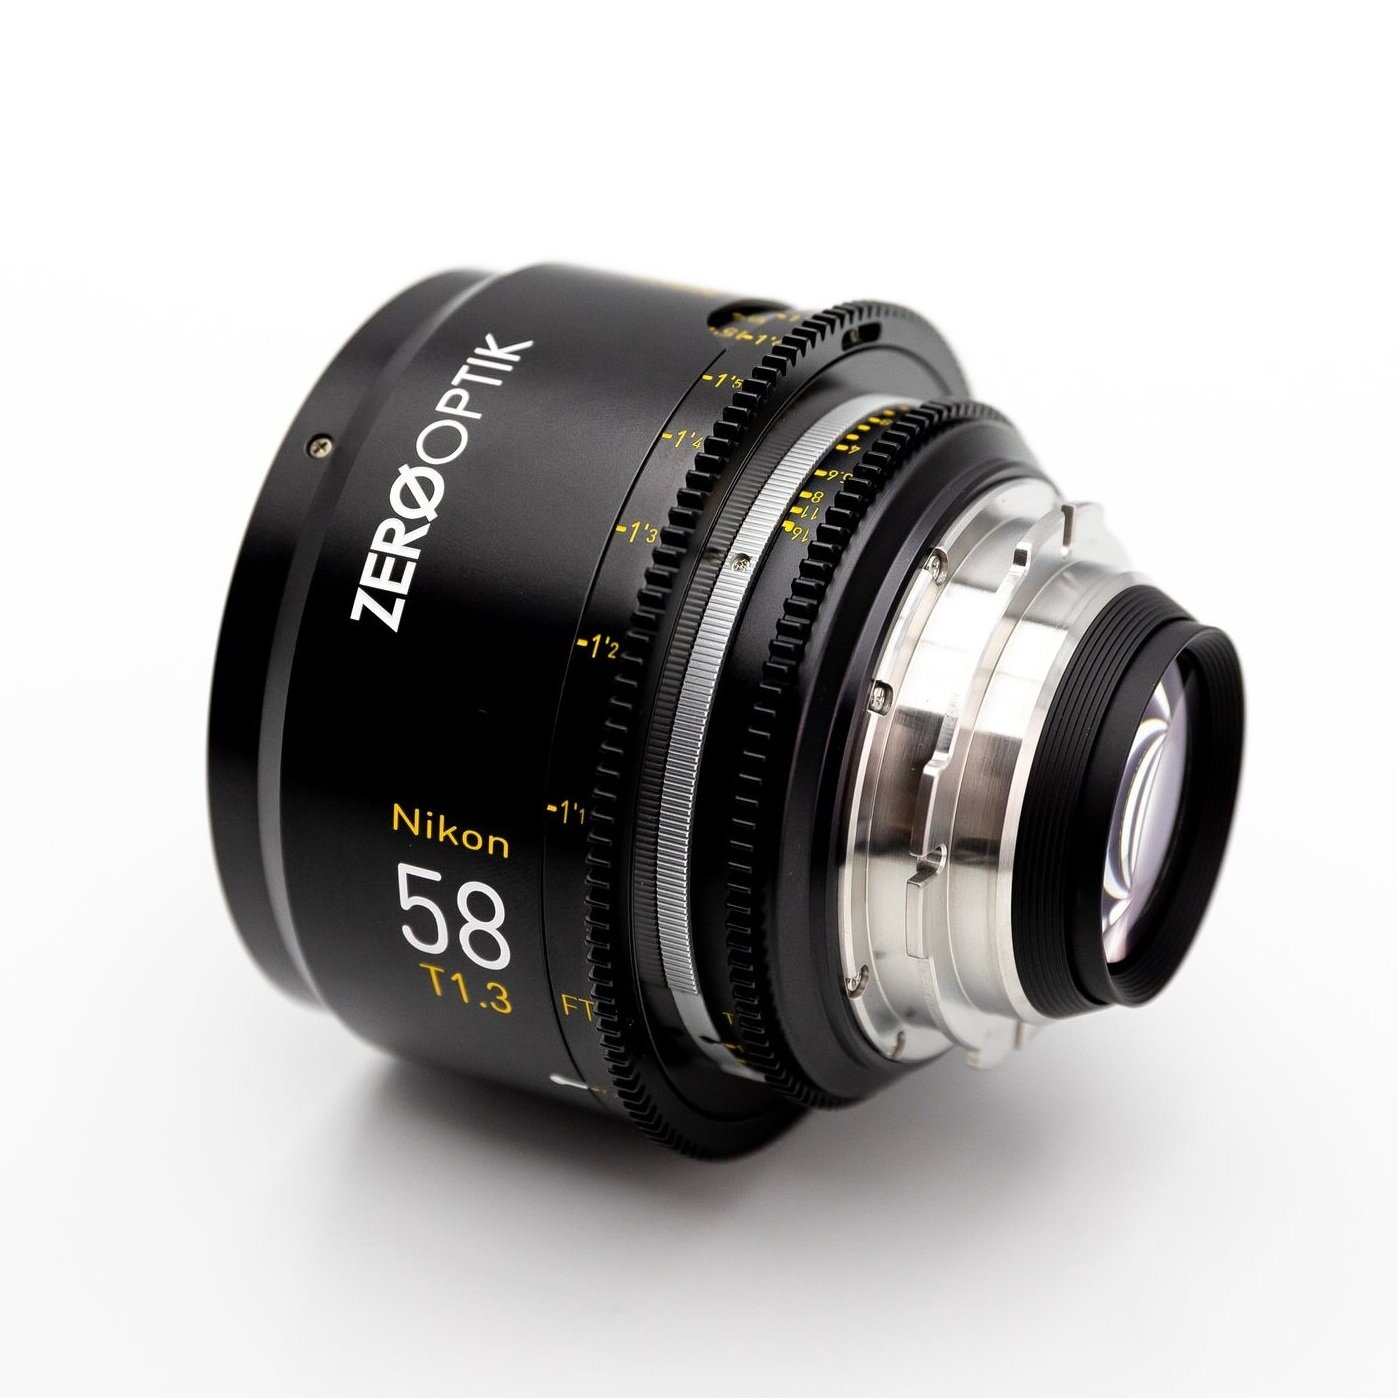 Nikon 58mm - Re-housed by Zero Optik